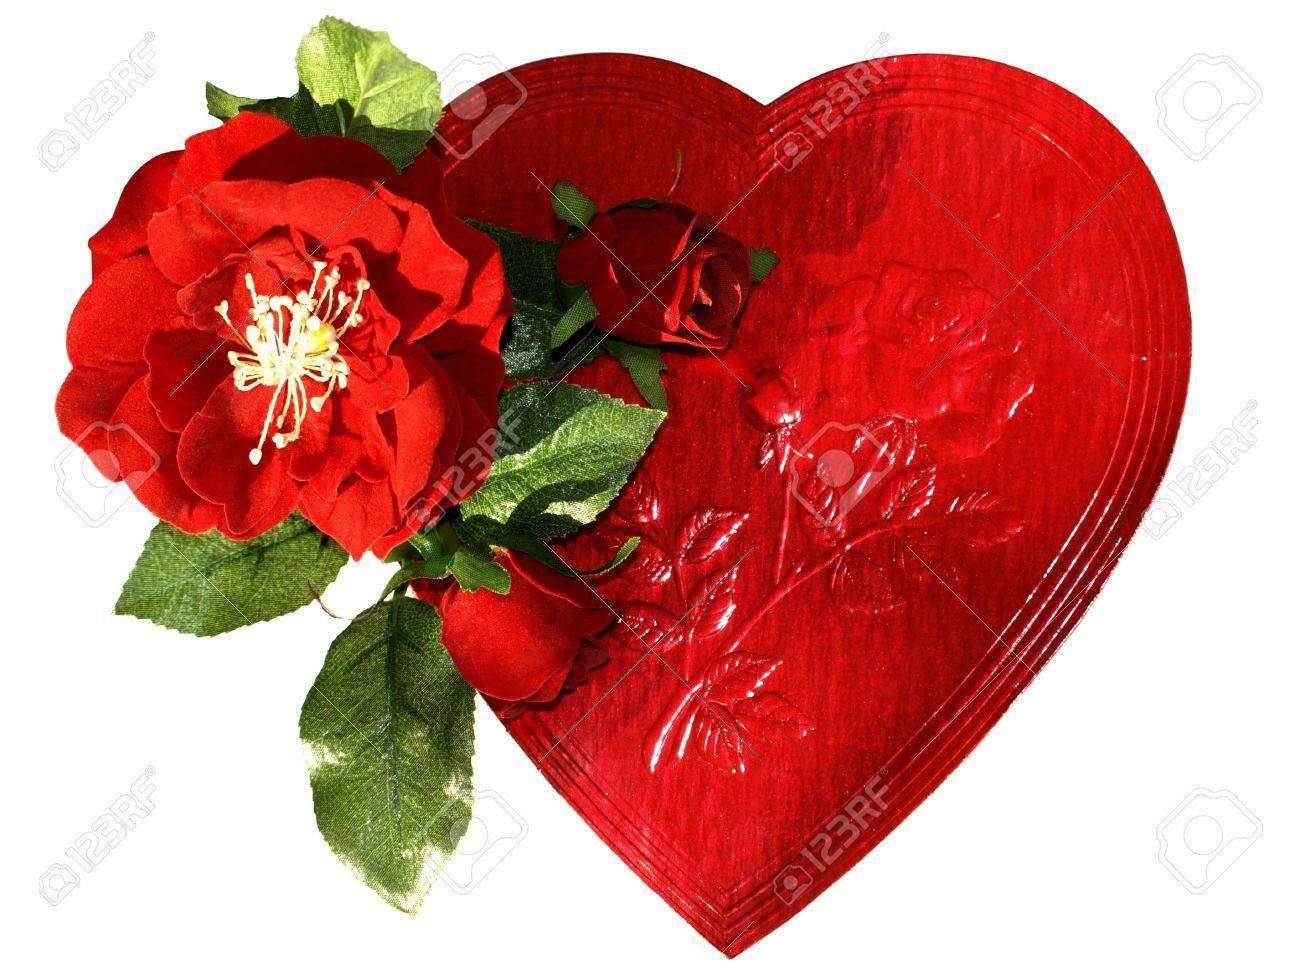 Picture of a red chocolate box with red roses for Valentine's Day, isolated over white Stock Photo - 4175866